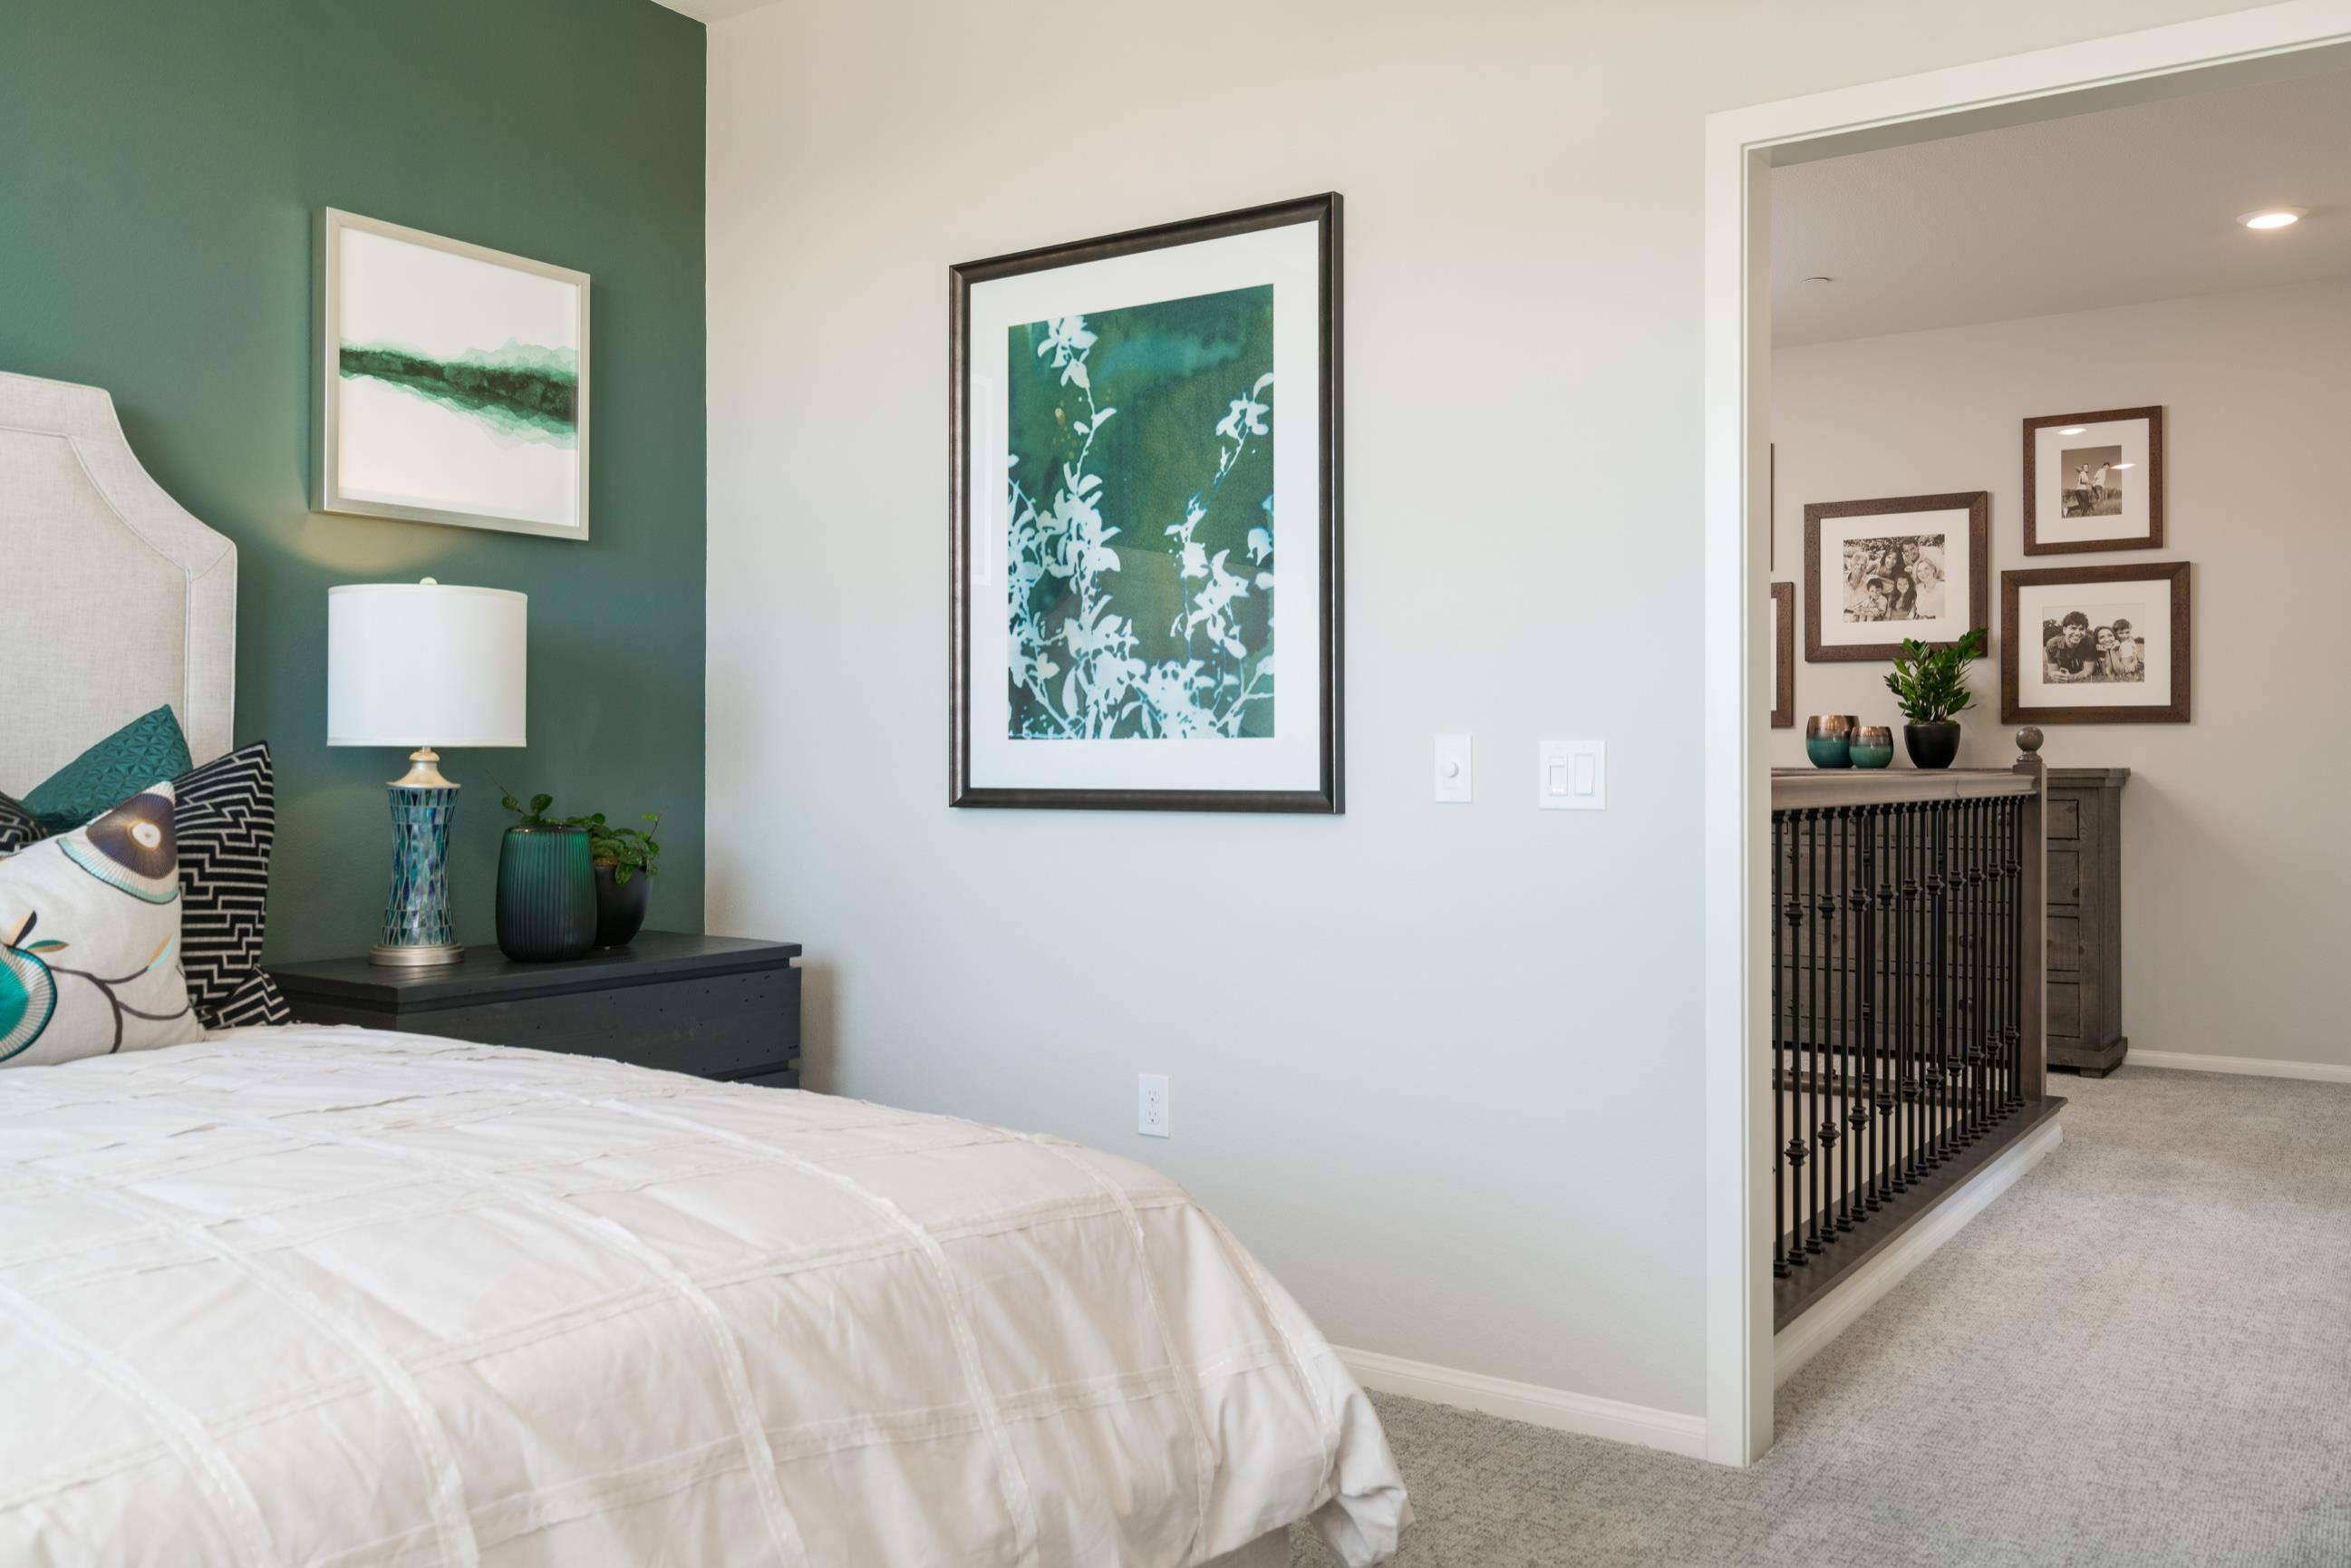 Bedroom featured in the Plan 2 By Heritage Building & Dev't in San Diego, CA